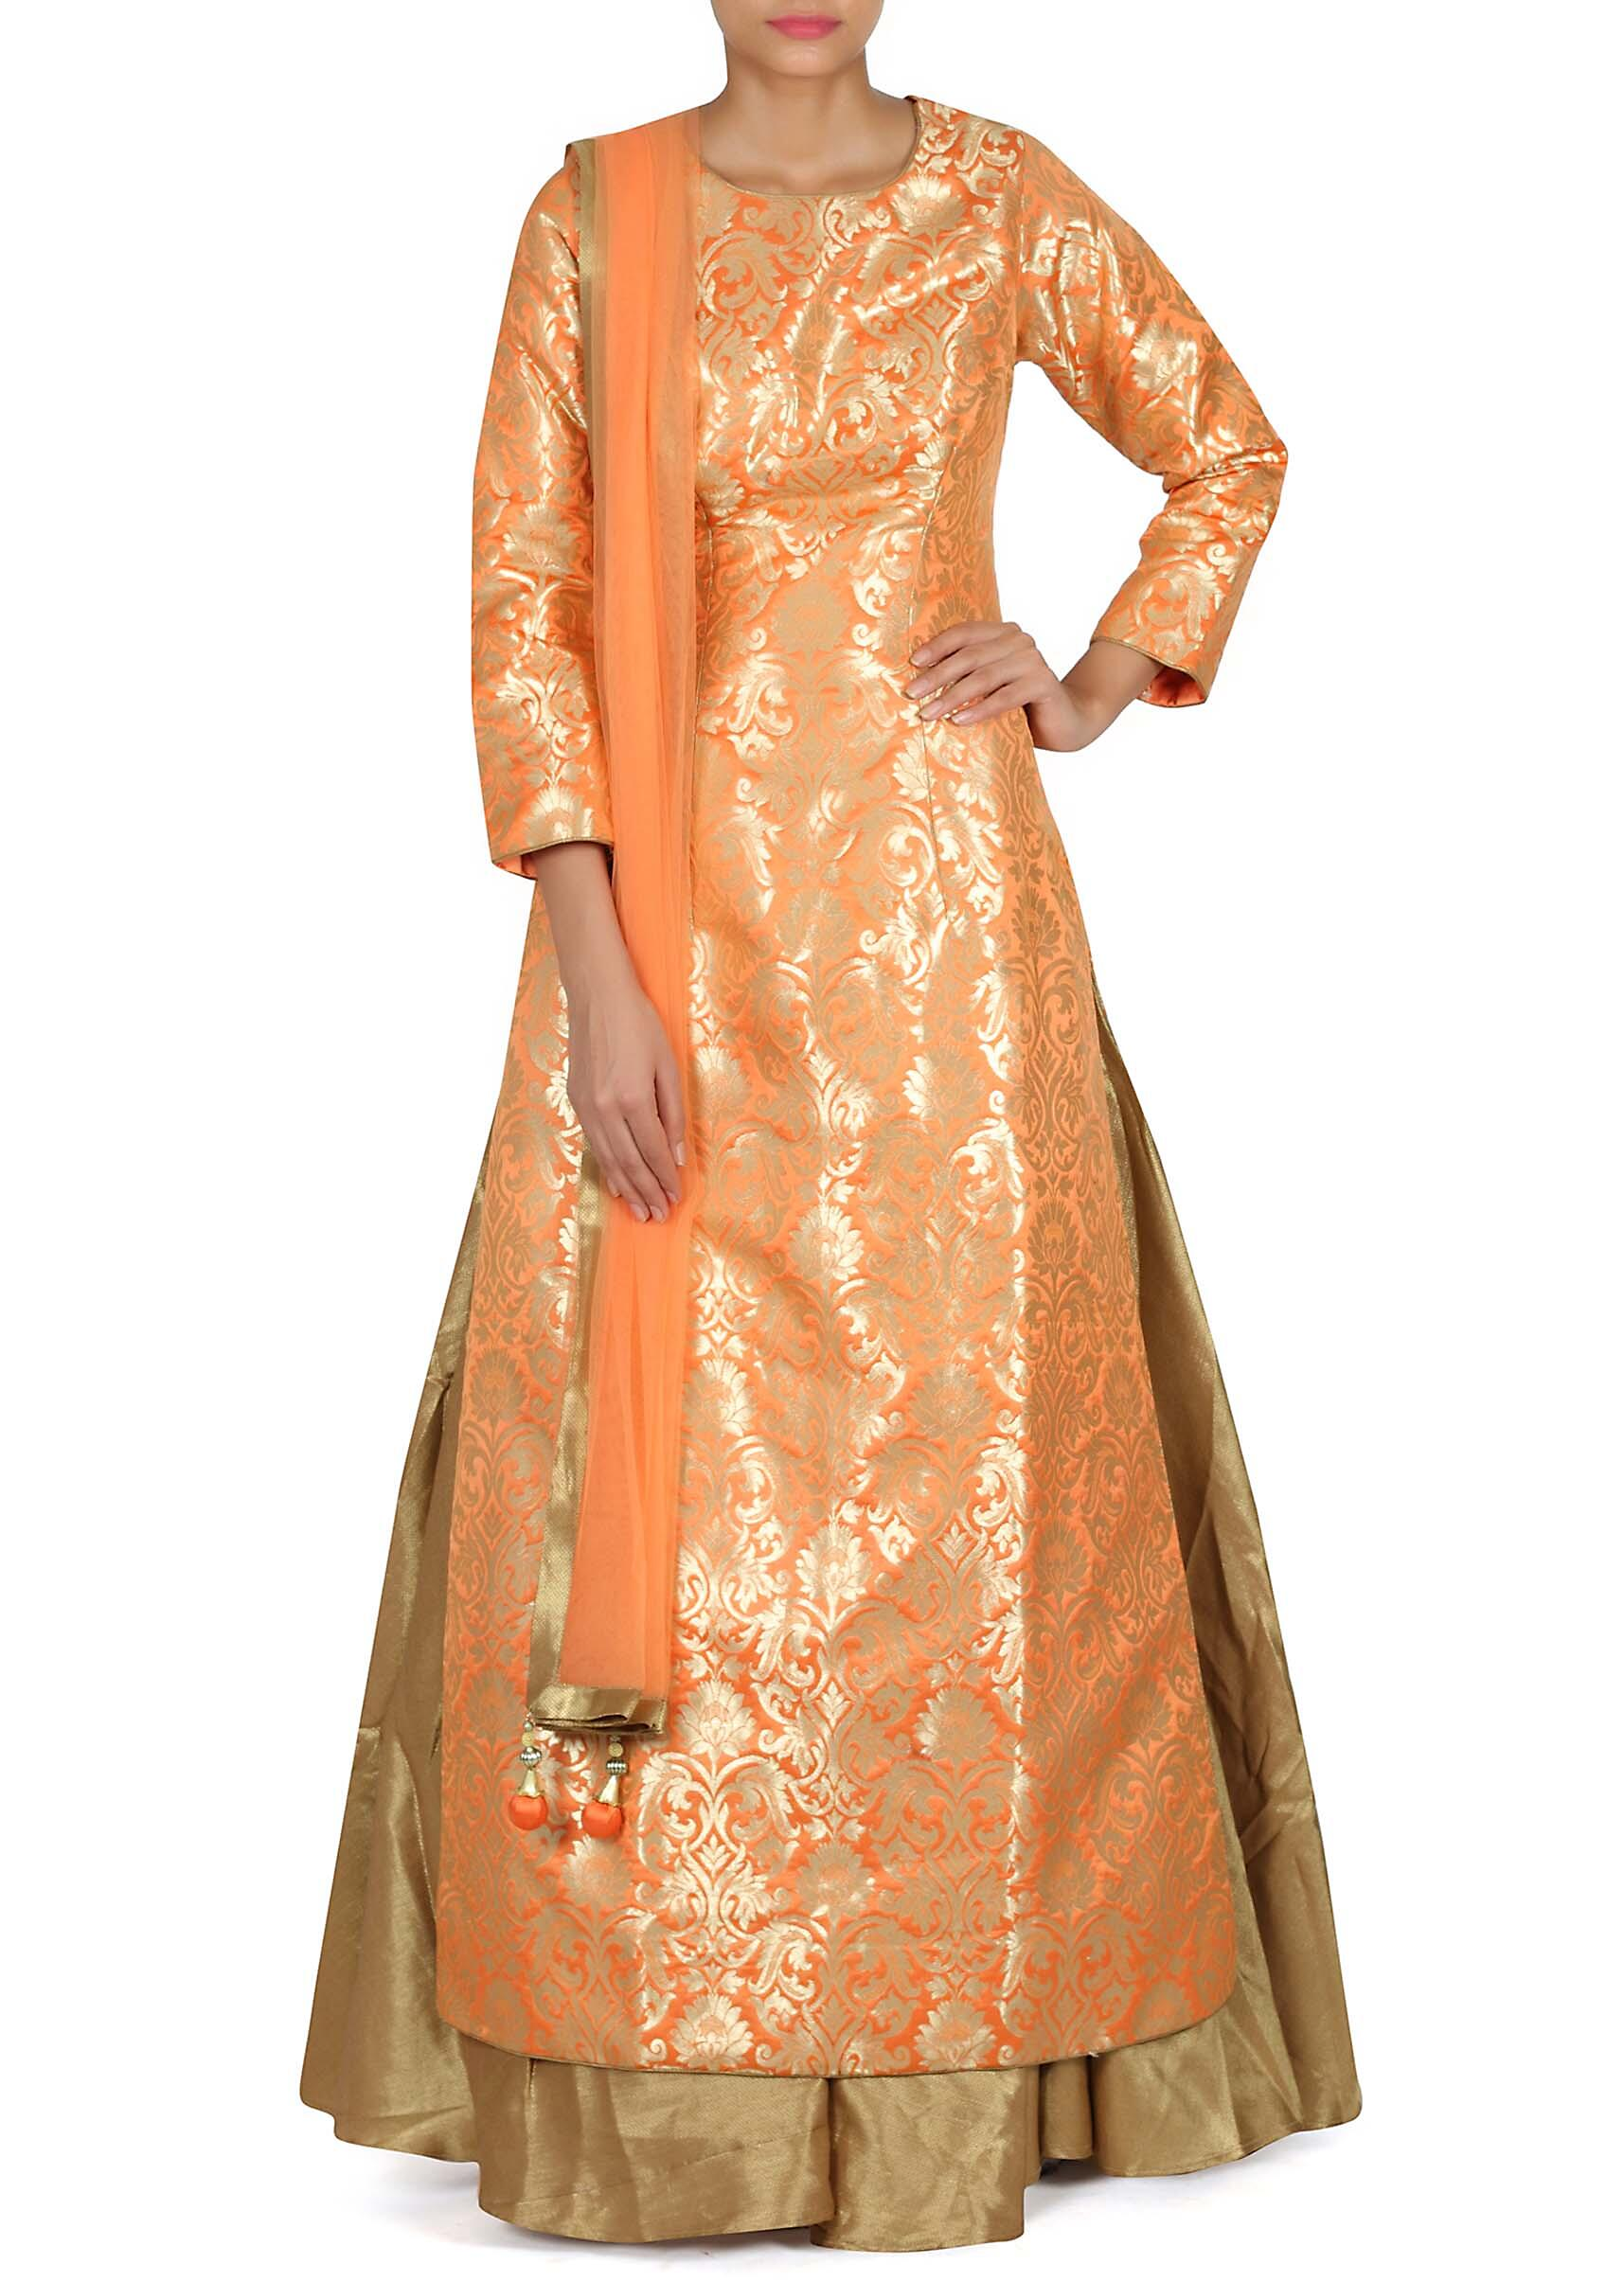 Image result for orange and gold brocade gown